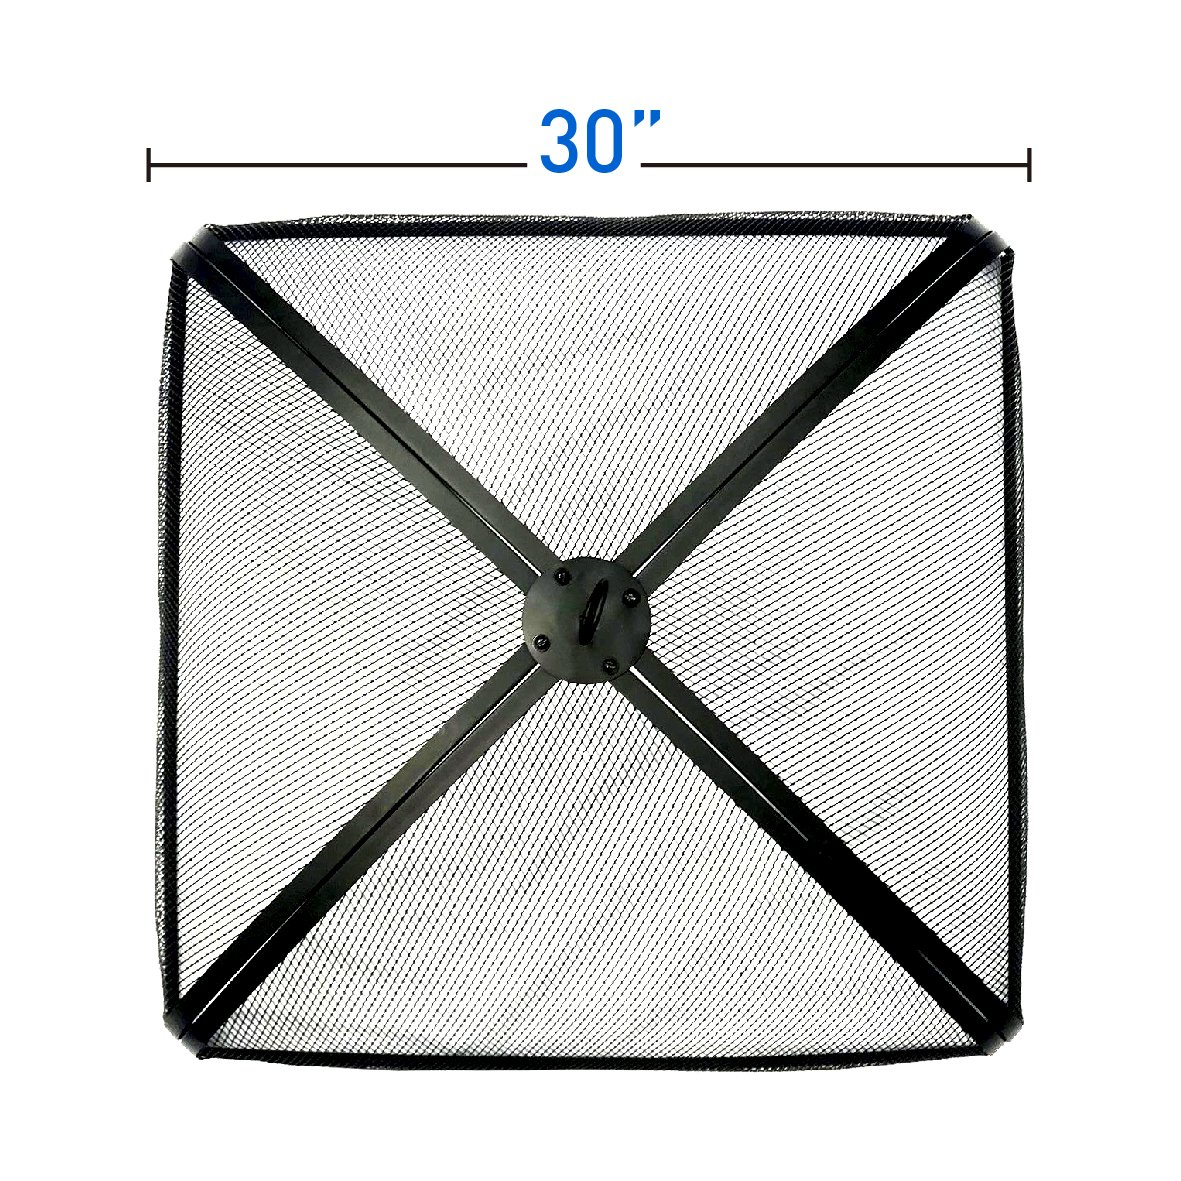 EasyGoProducts EGP-FIRE-013 EasyGo 30'' Fire Square Pit Spark Screen Protector Cover, Firepit Lid